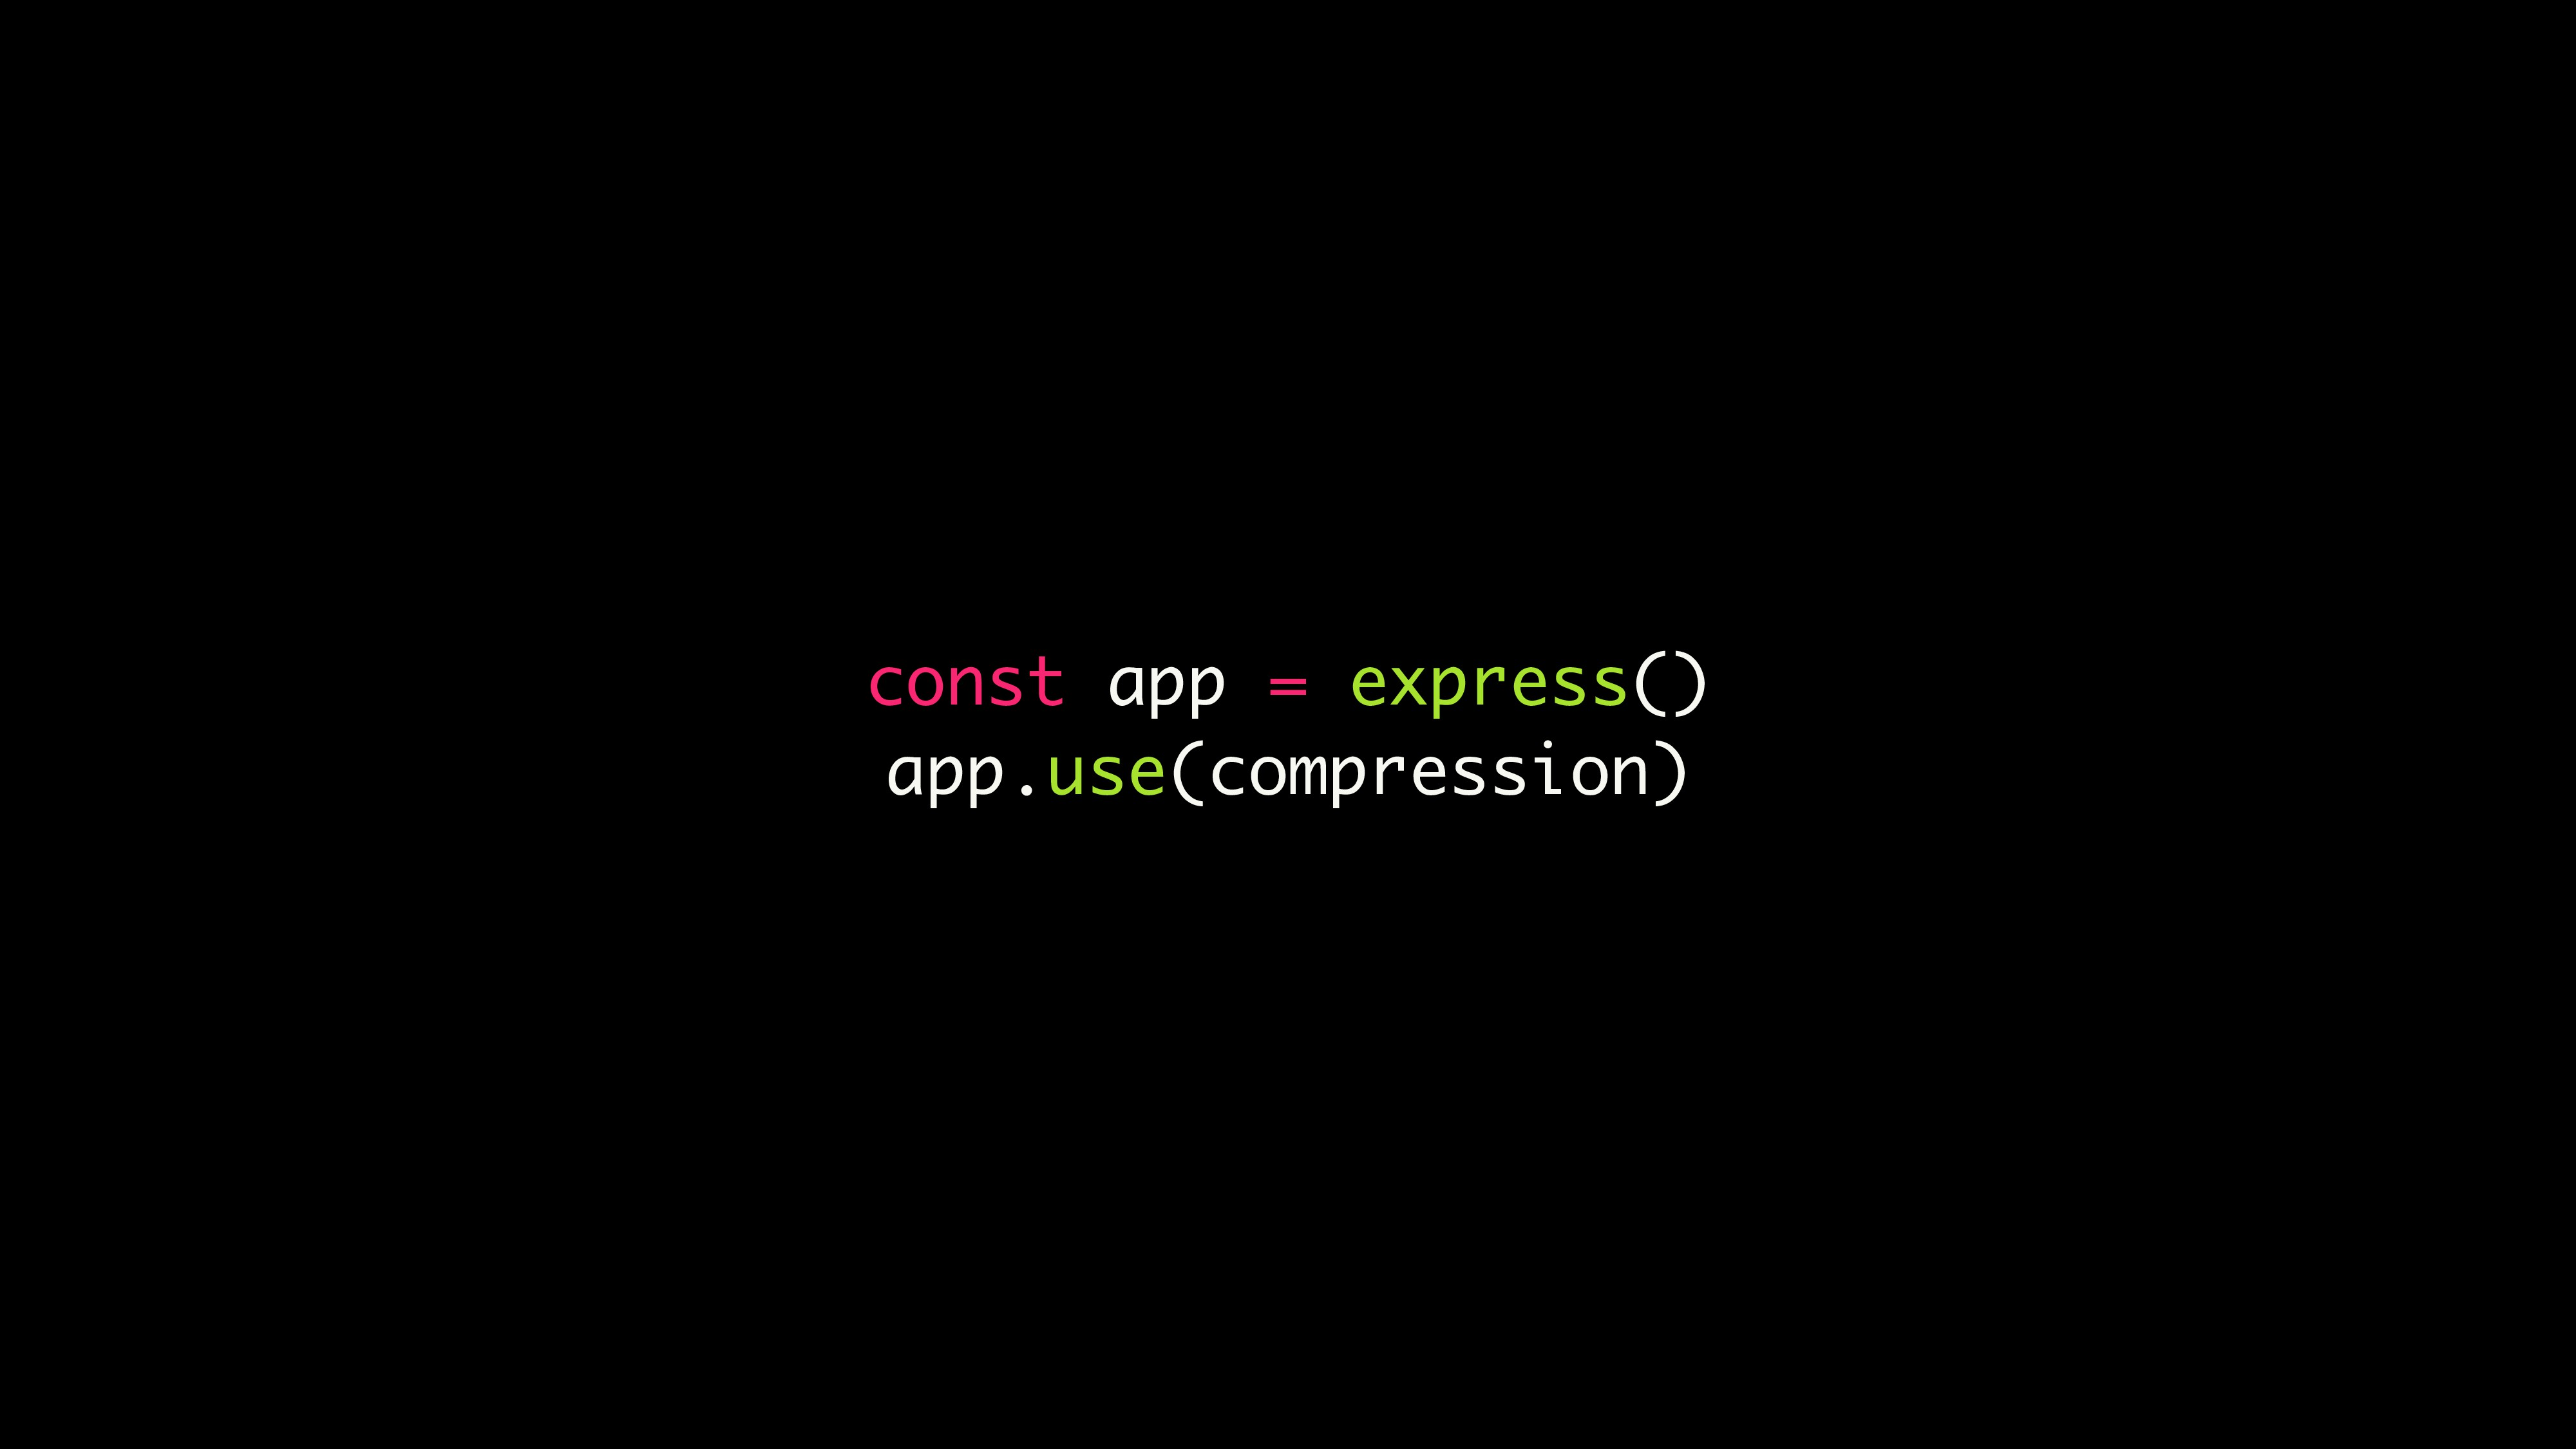 const app = express() app.use(compression)